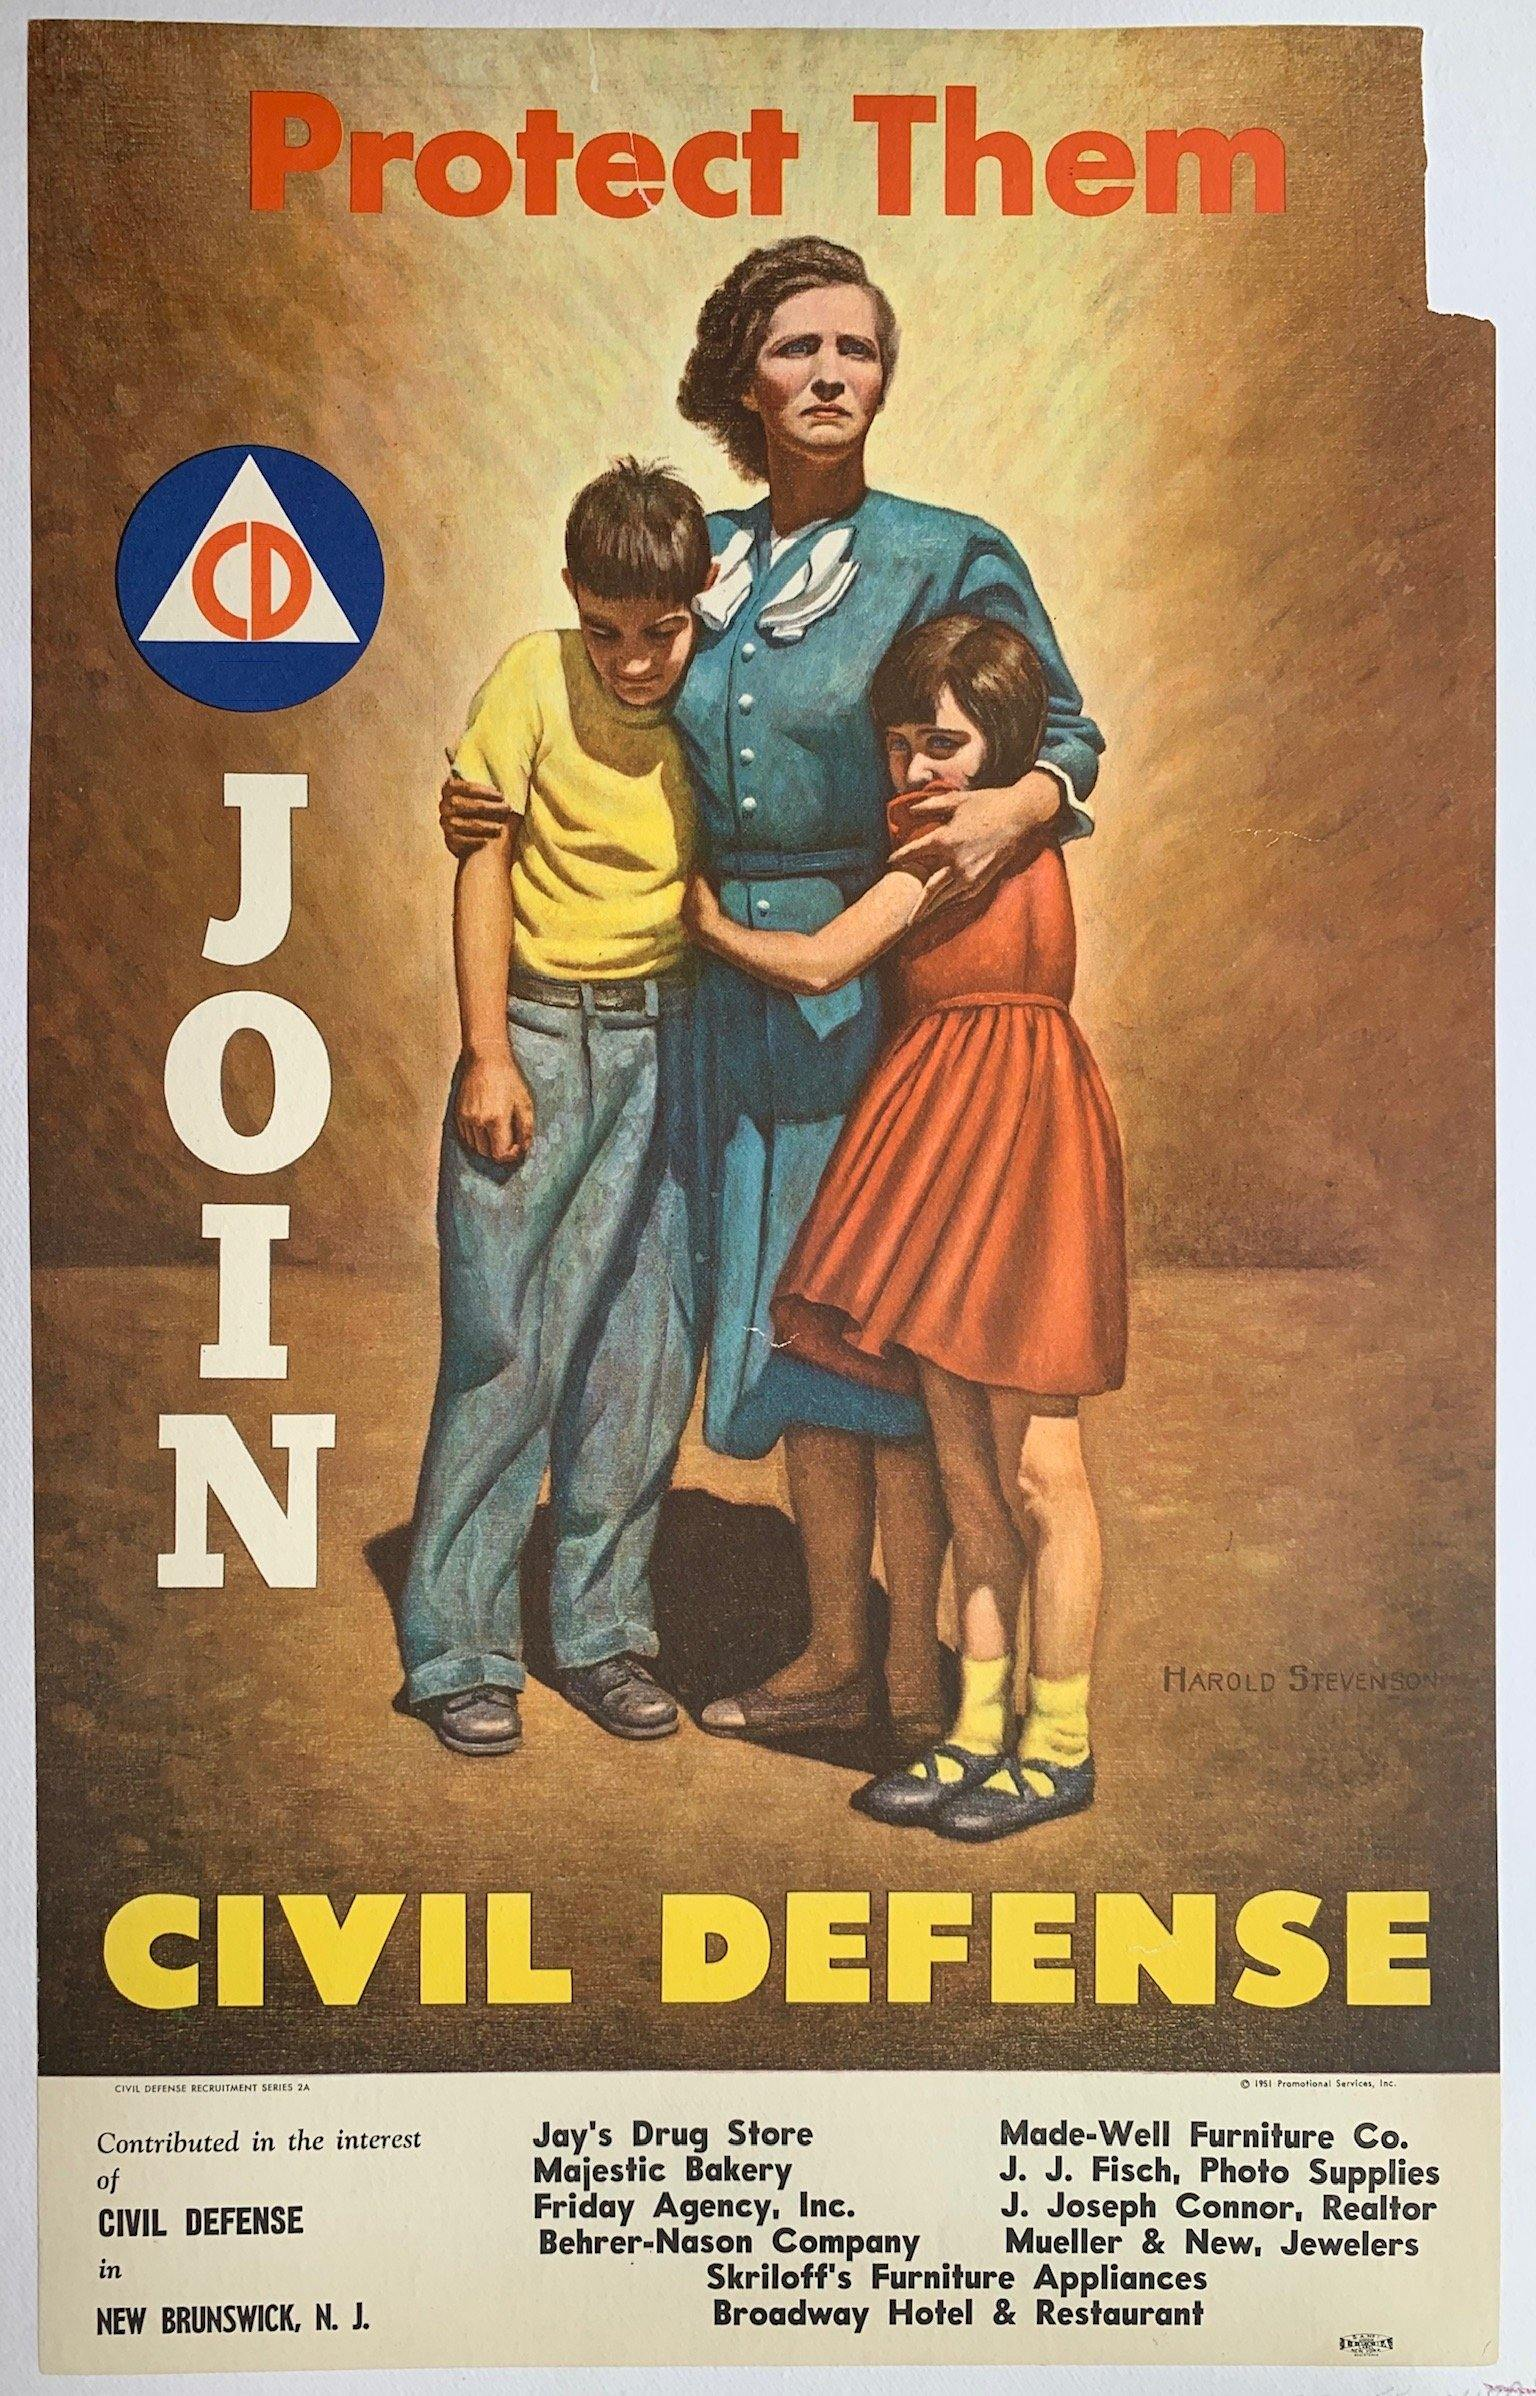 Protect Them, Join Civil Defense - Poster Museum